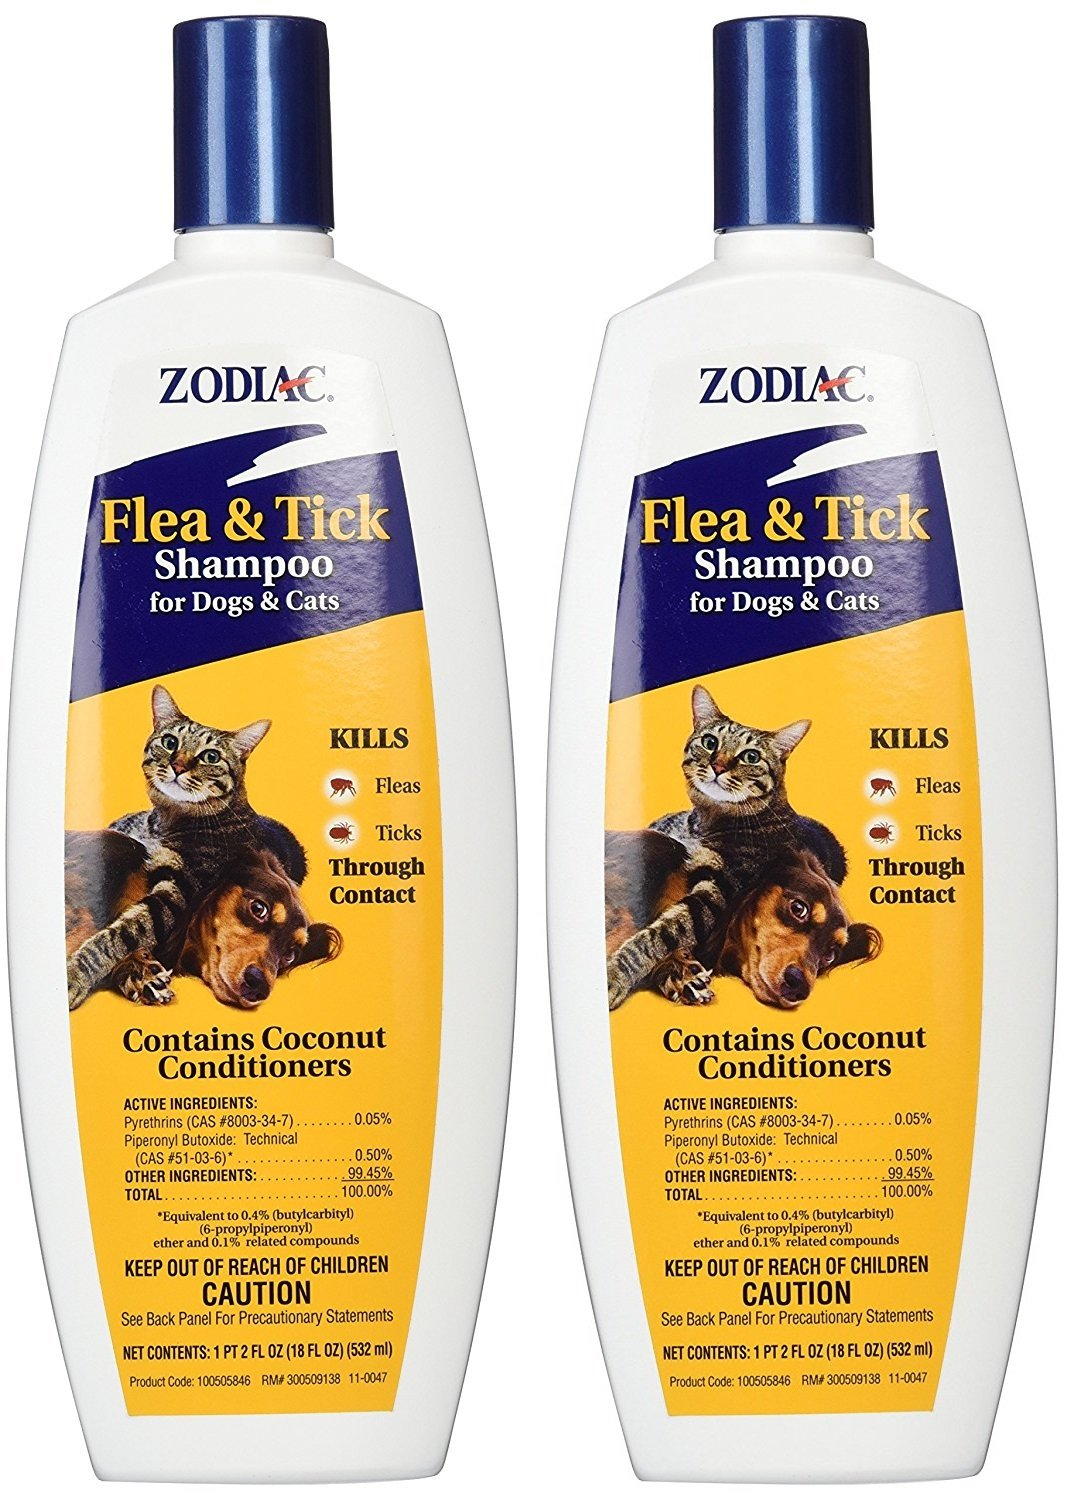 Zodiac Flea and Tick Shampoo for Dogs and Cats (2 Pack - 18 oz.)